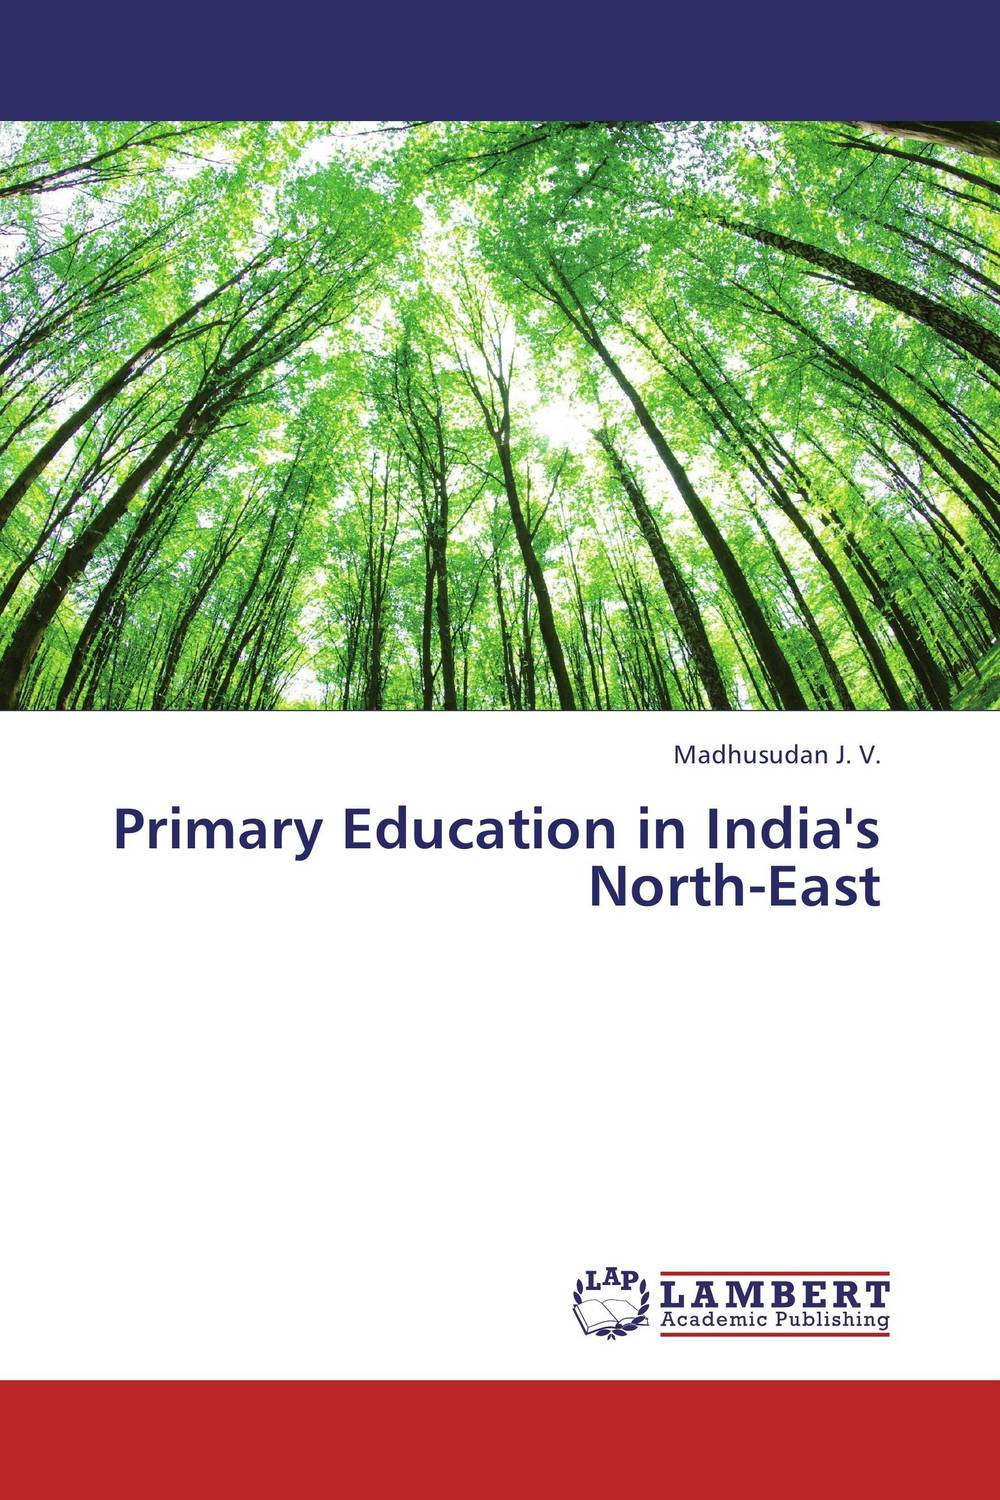 Primary Education in India's North-East икона янтарная богородица скоропослушница кян 2 305